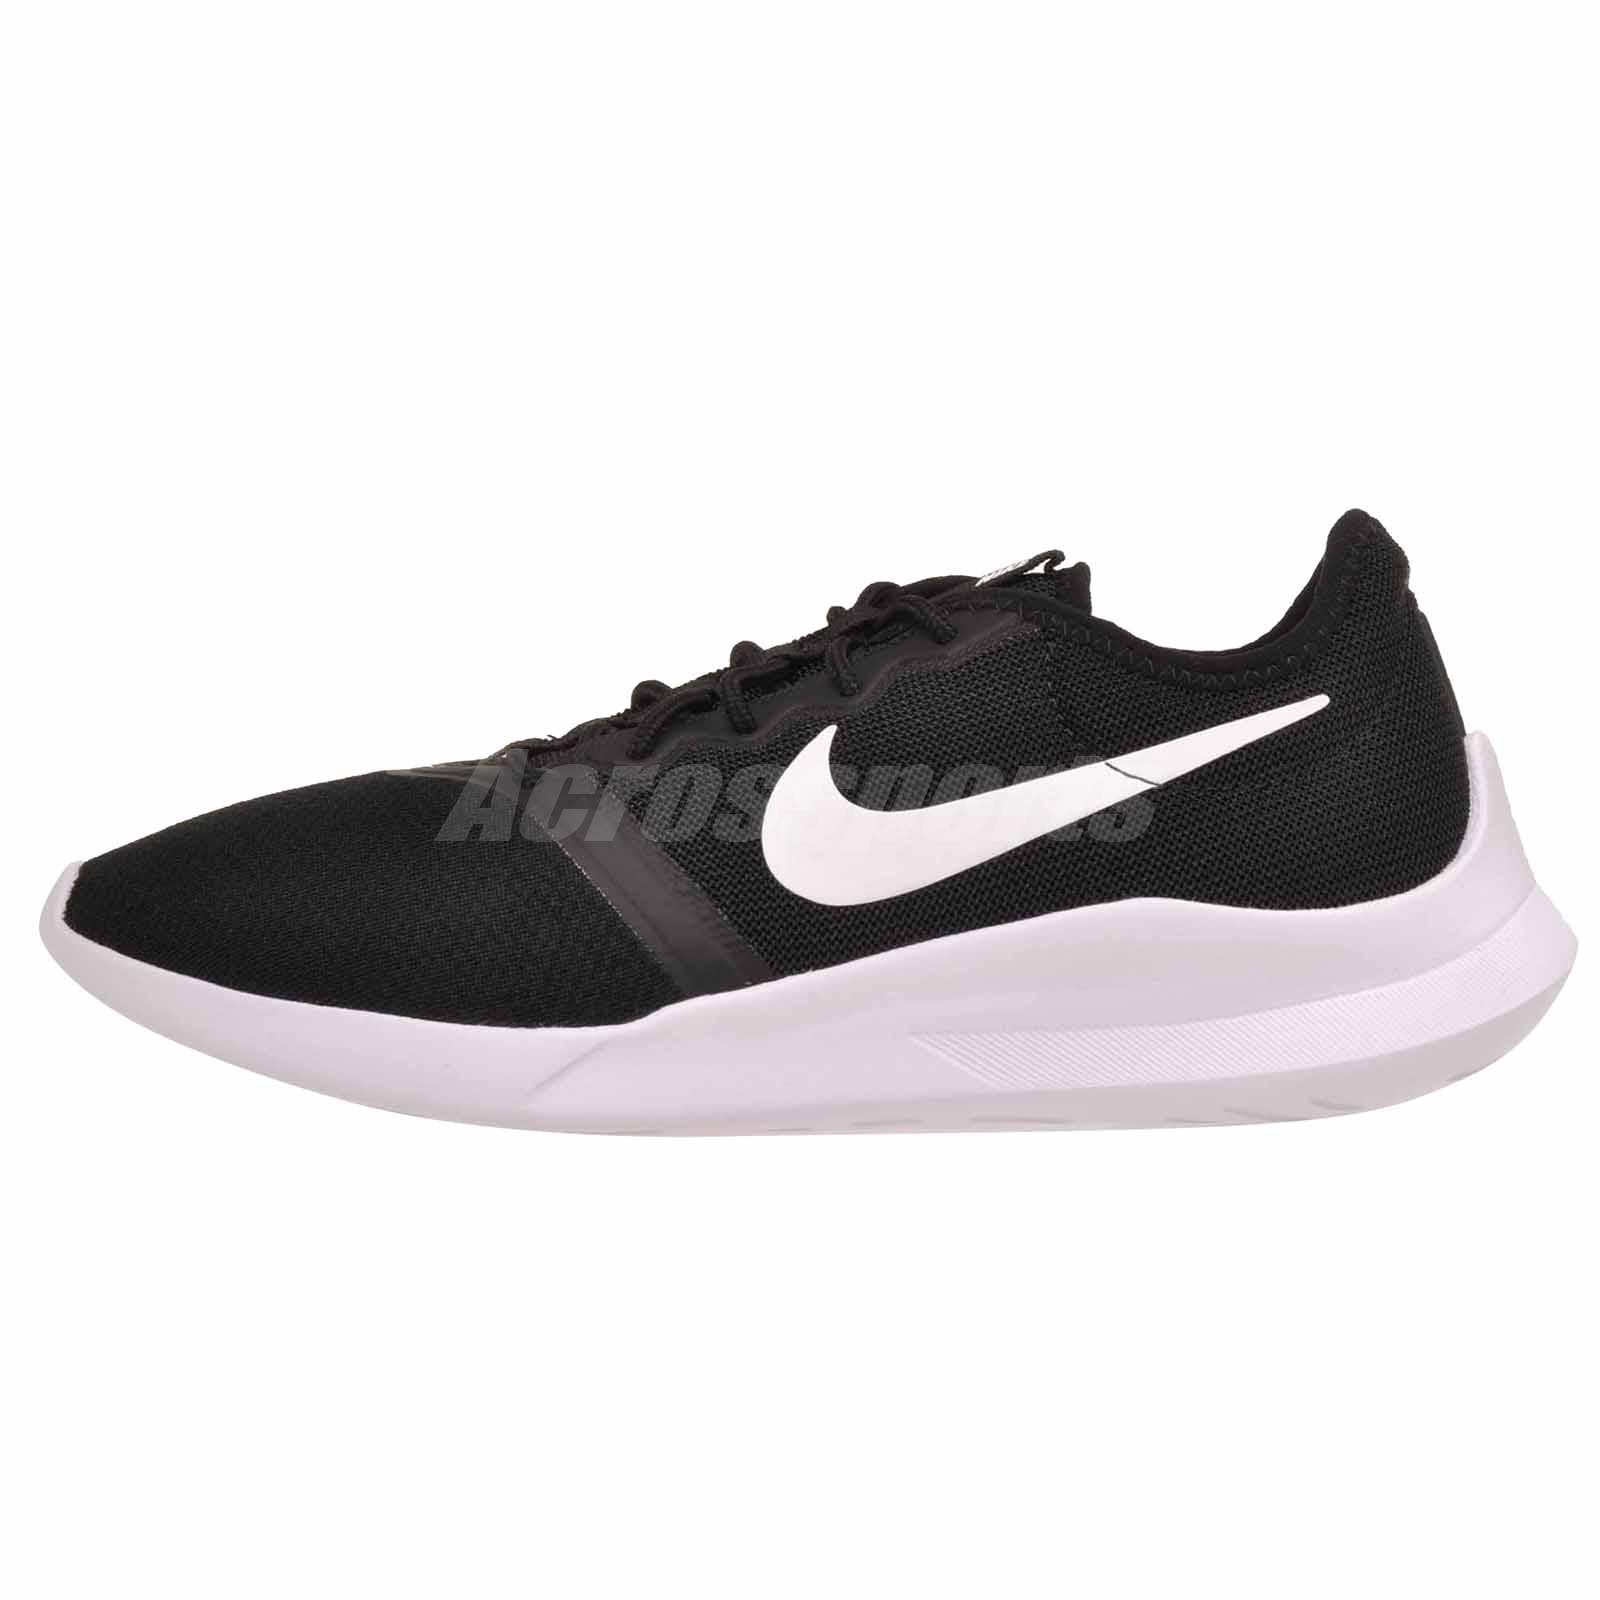 Details about Nike Wmns VTR Running Womens Shoes Black White AT4345-001